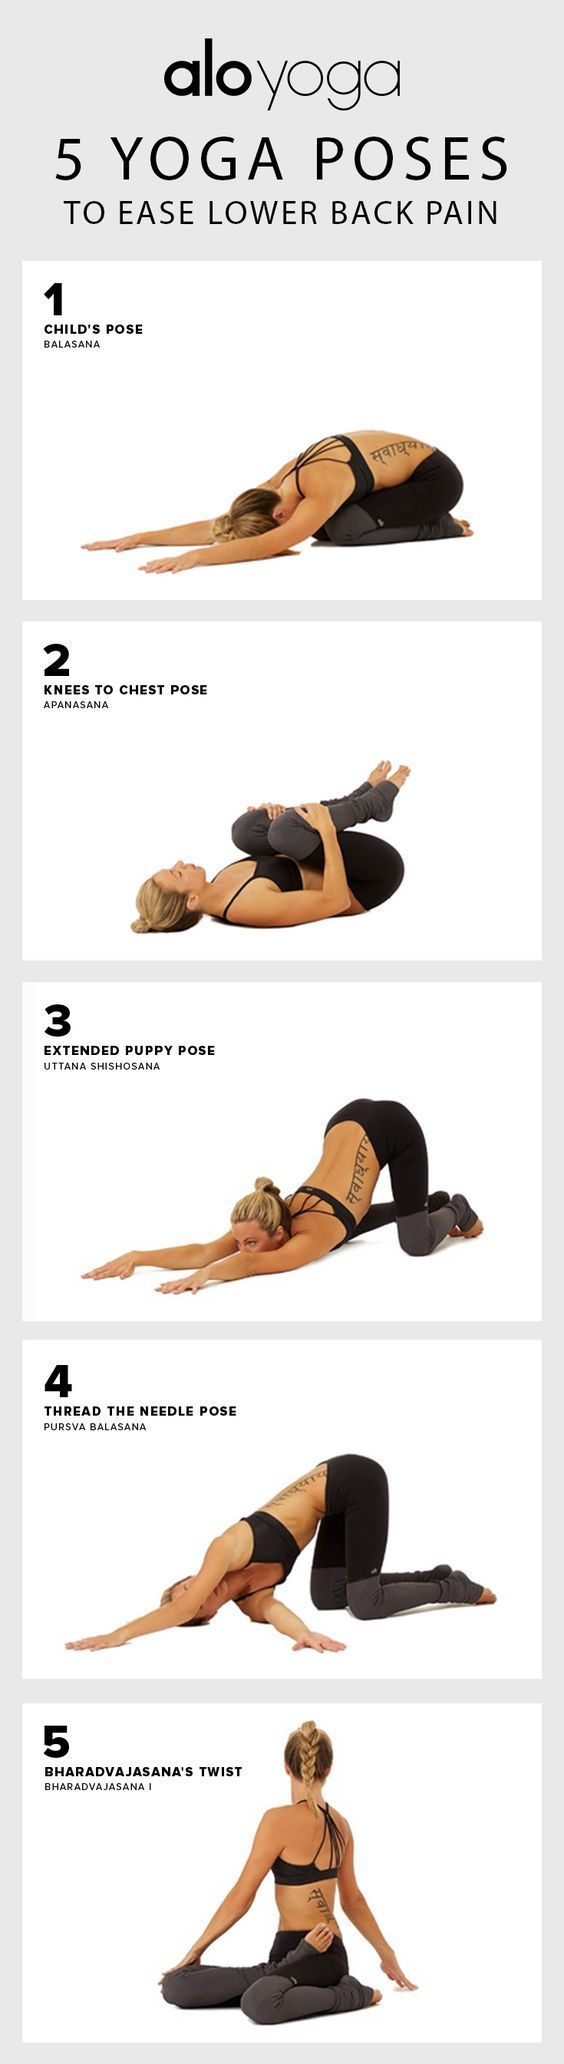 Getting rid of lower back pain the easy way 5 Yoga Poses